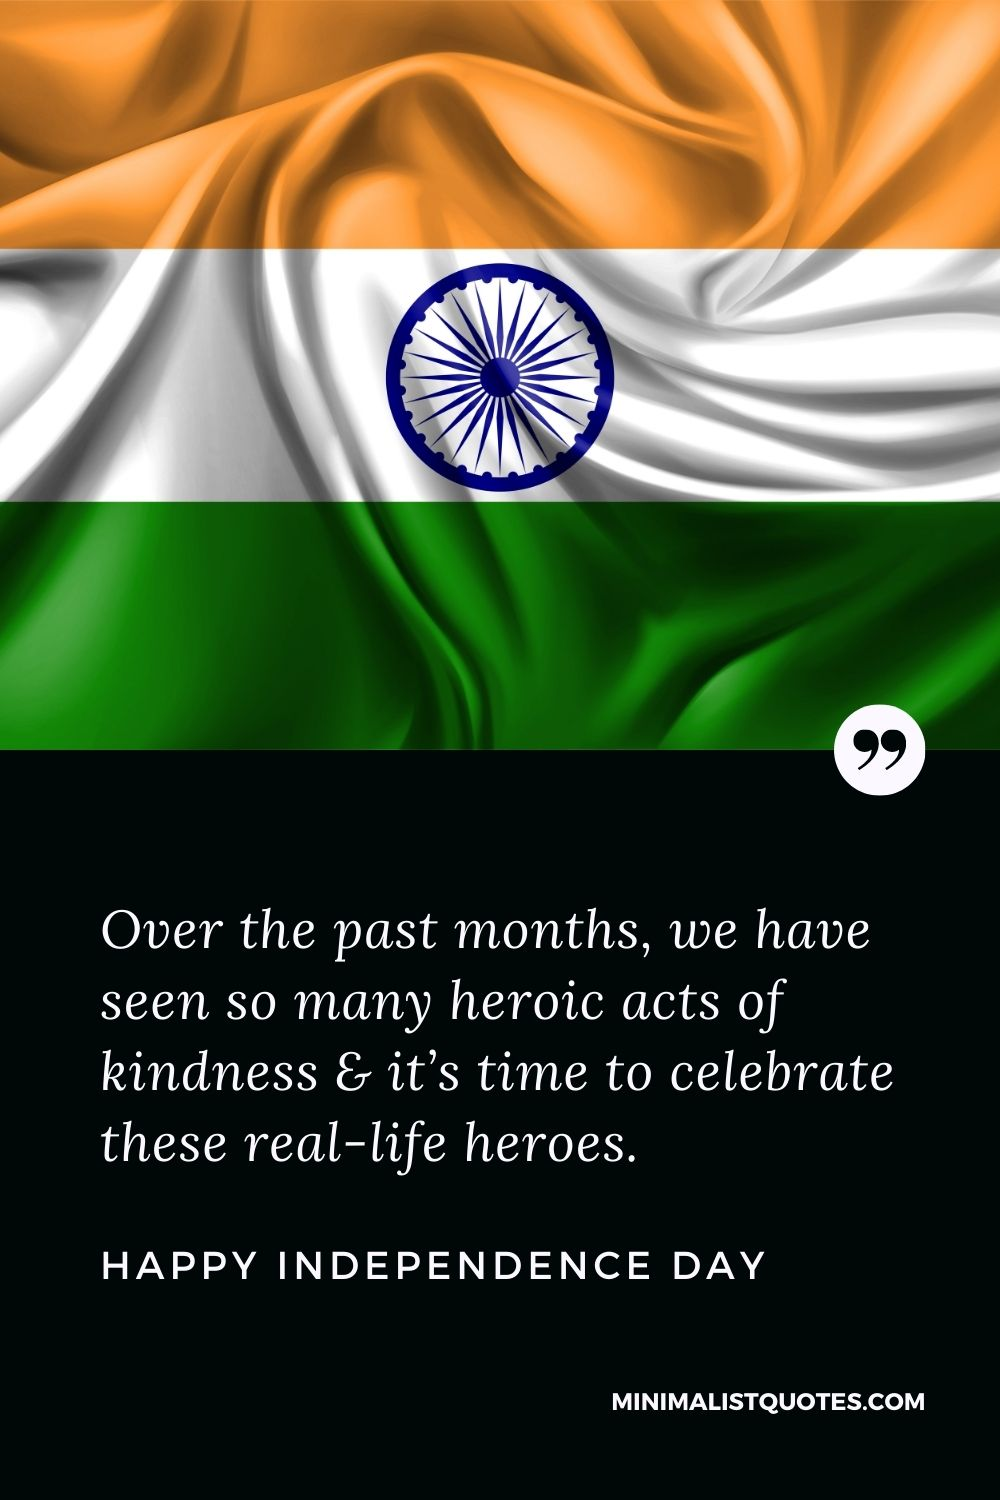 Independence Day Wish & Message With HD Image: We have seen so many heroic acts of kindness & it's time to celebrate these real-life heroes. Happy Independence Day!